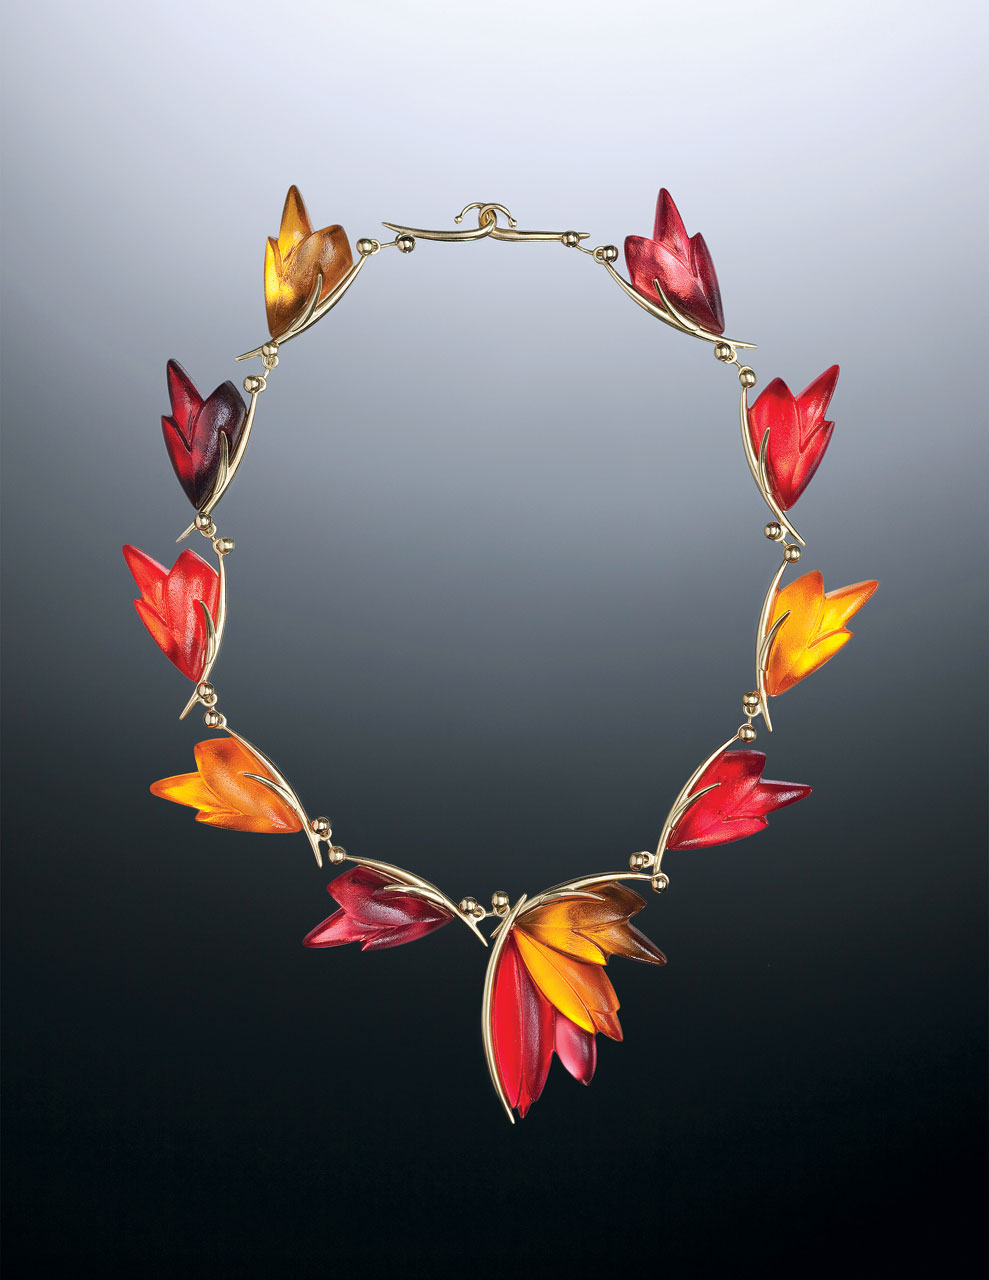 LINDA MACNEIL:  BOUQUET EDITION, FLORAL SERIES NO. 84 NECKLACE of acid polished red, orange, amber, pink, maroon transparent glass, laminated to mirrored glass, polished eighteen karat yellow gold, 20.3 centimeters diameter, 2009.